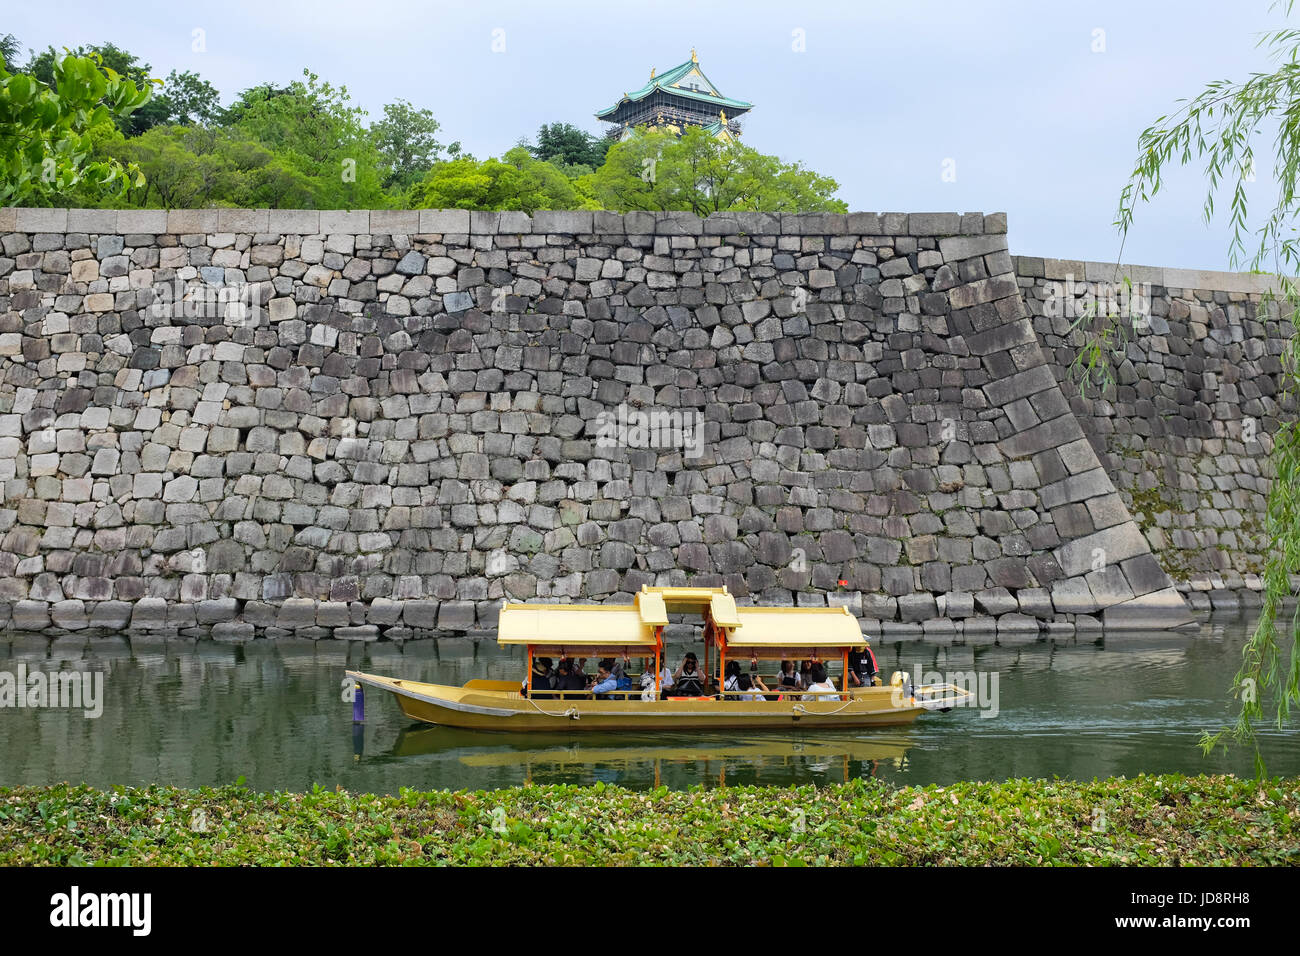 A boat taking tourists on a trip on the moat of Osaka Caslte in the city of Osaka, Japan. - Stock Image